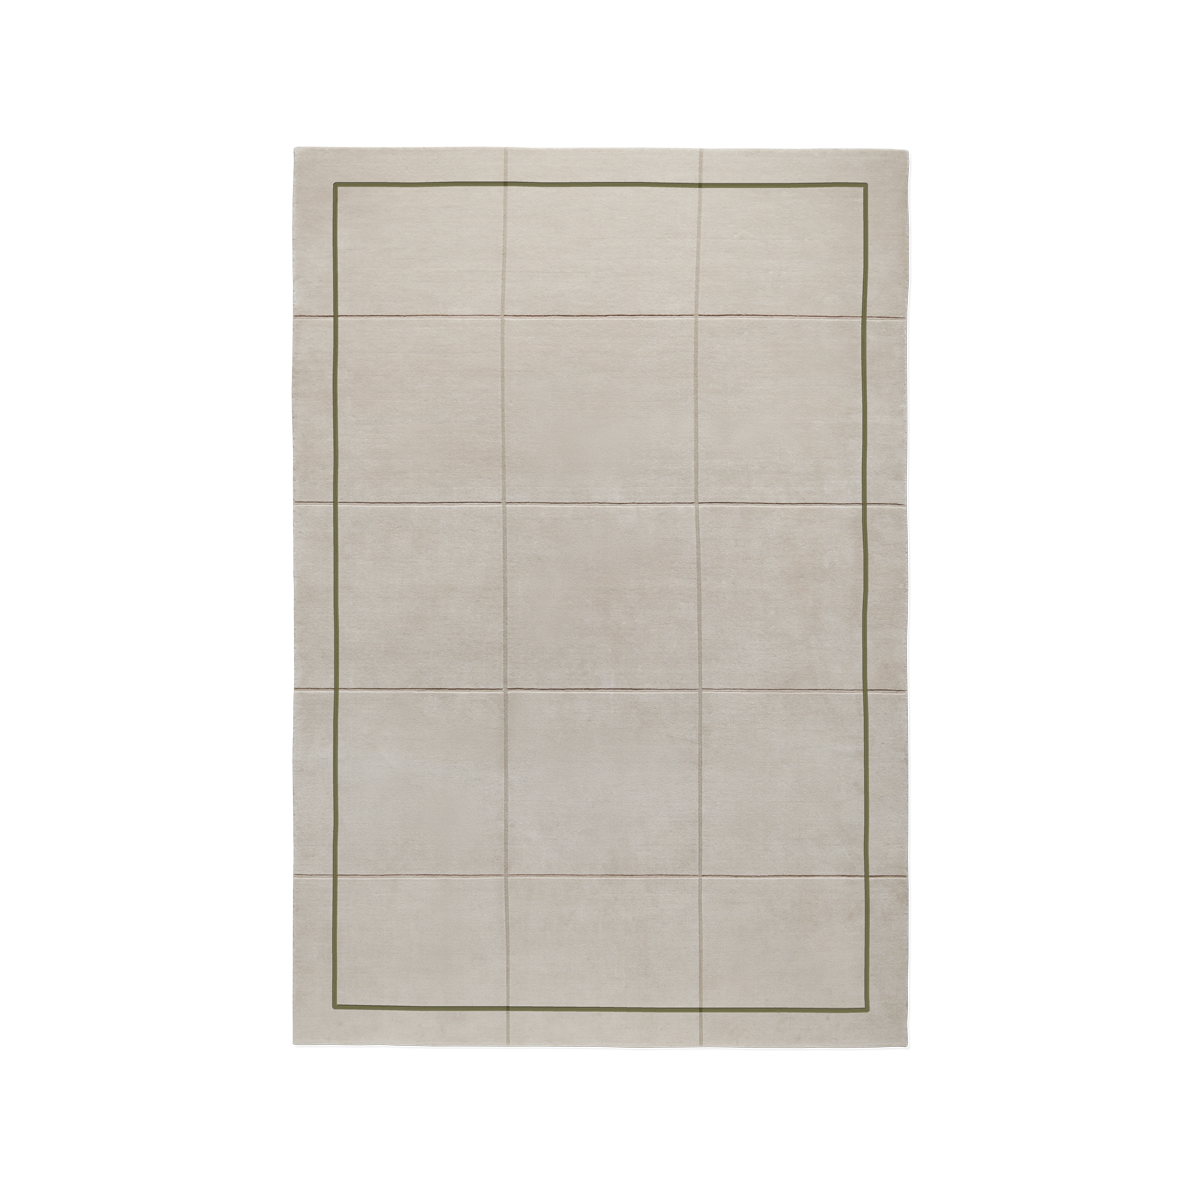 Product image of the plush rug AML 02. The rug is a cream color with a green, thin frame. There is also a square pattern created from cutting the pile shorter.